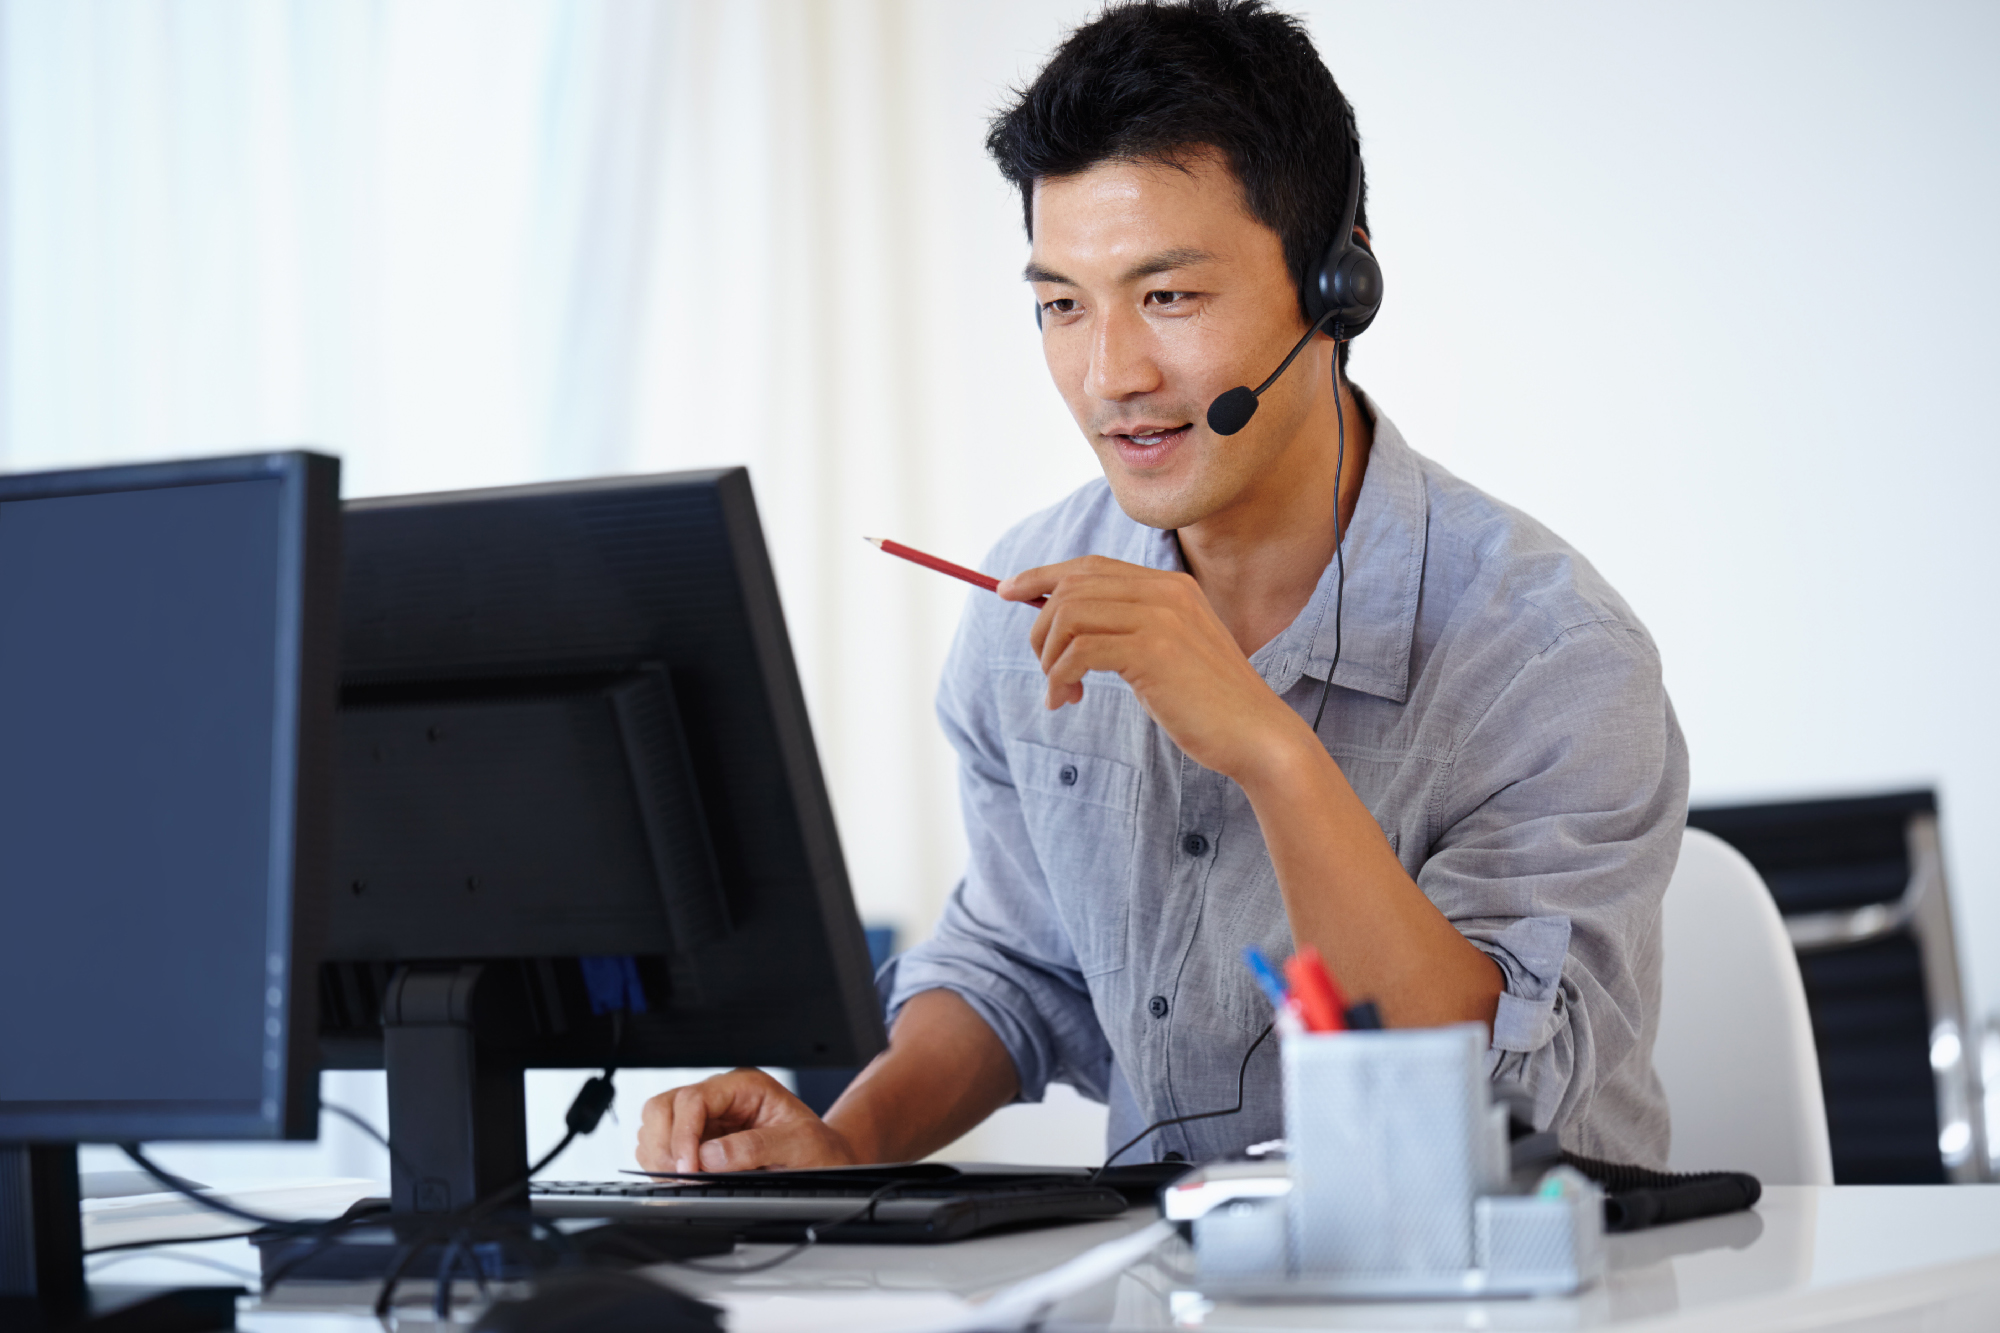 Asian man using a computer and talking on a headset